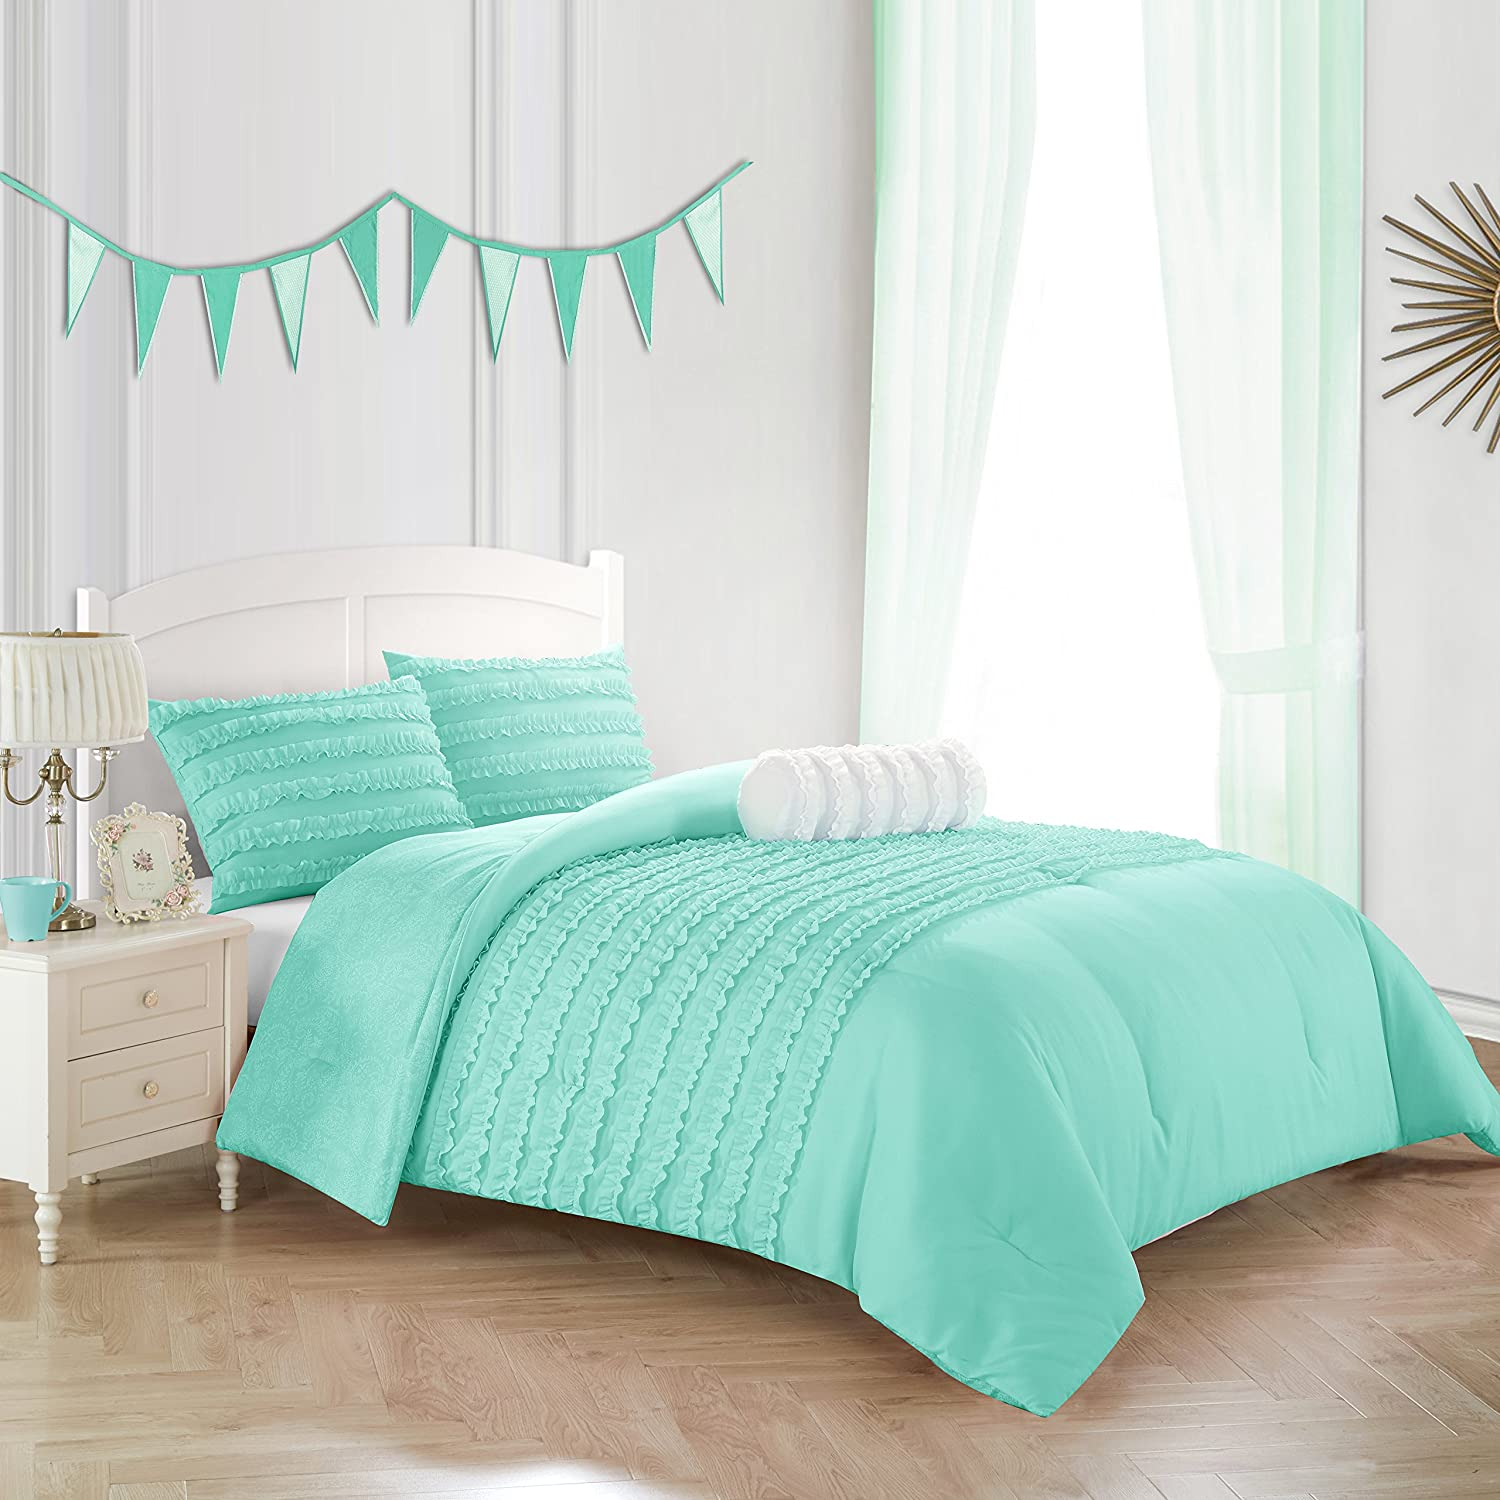 Idea Nuova Comforter Set, Full Queen, Mint